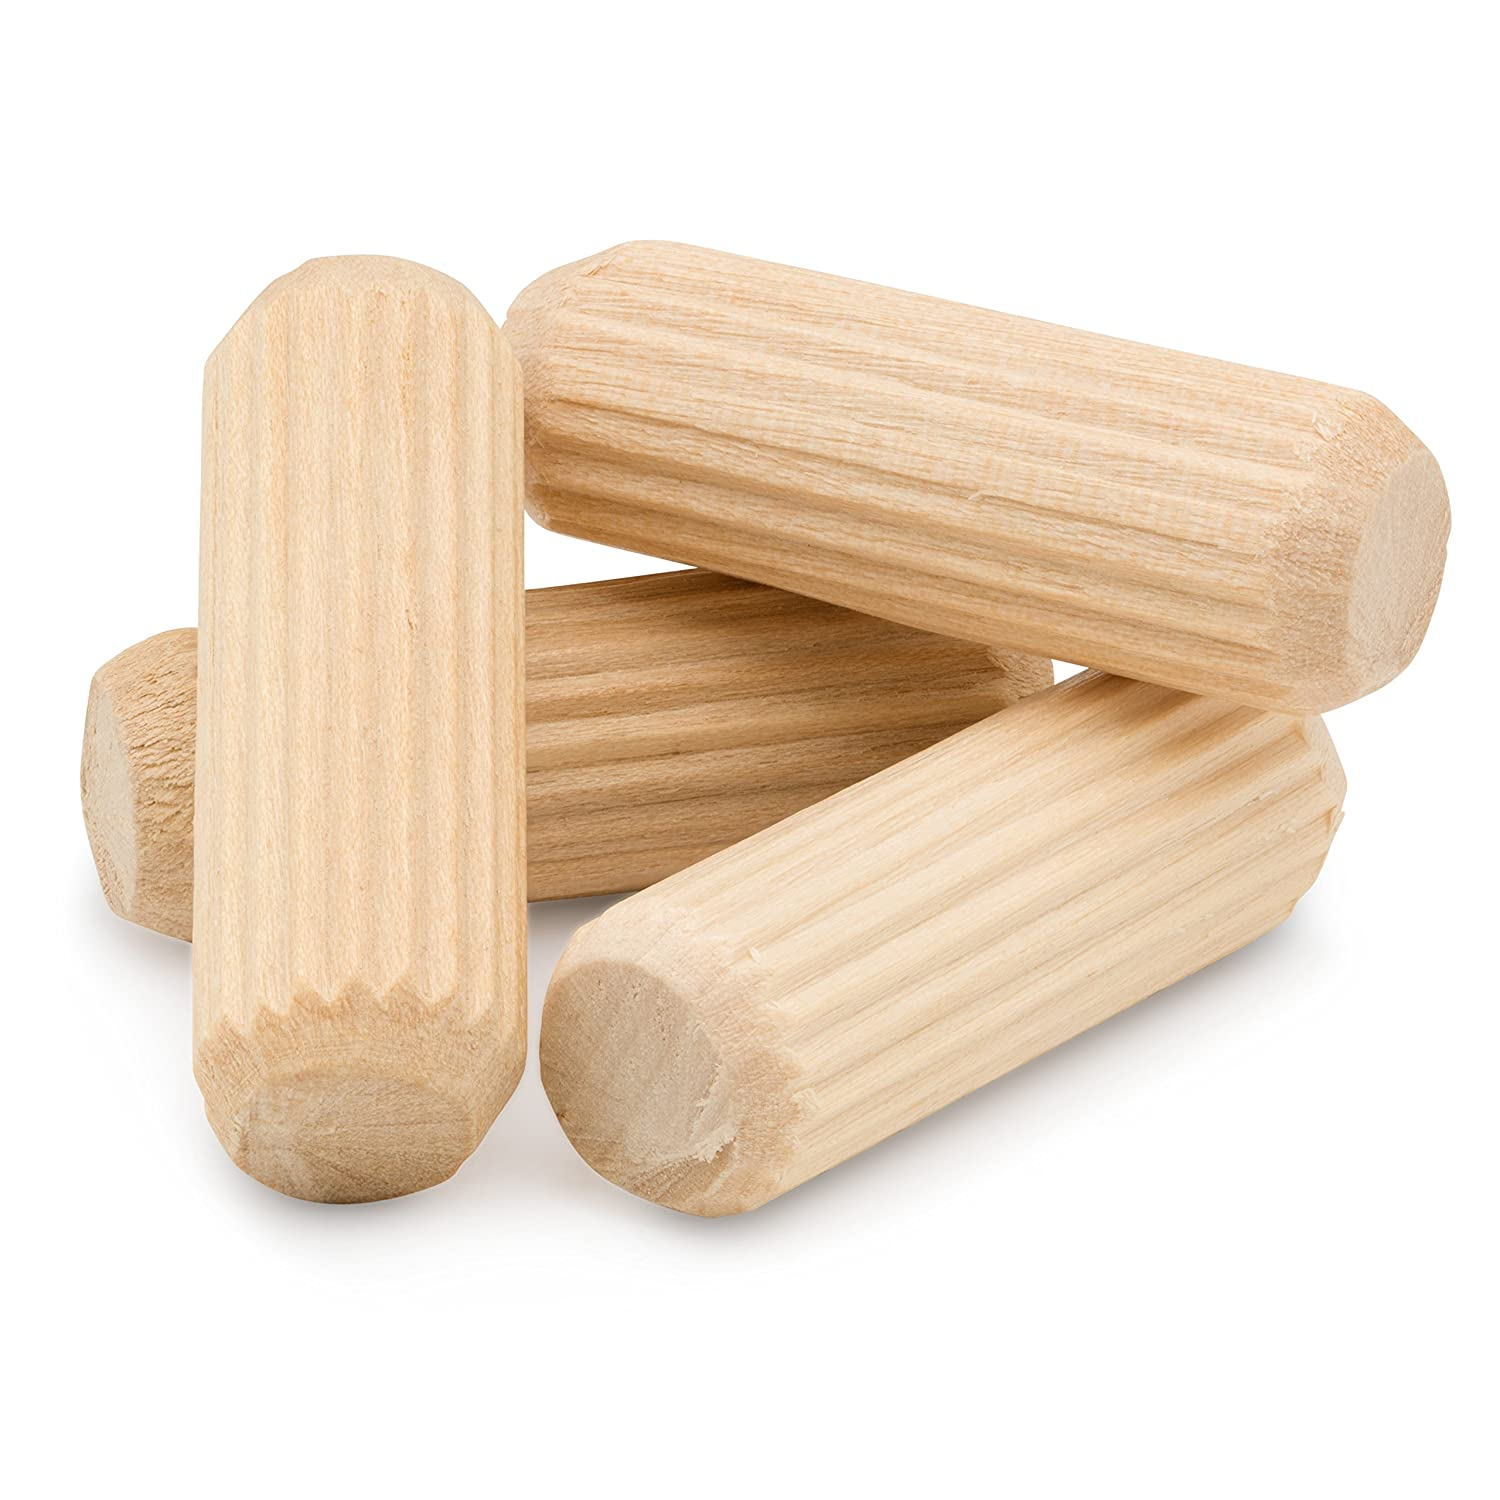 Pack of 100 Straight Fluted Dowel Pins with Beveled End Wooden Dowel Pins 3//8 x 1-1//2 by Woodpeckers